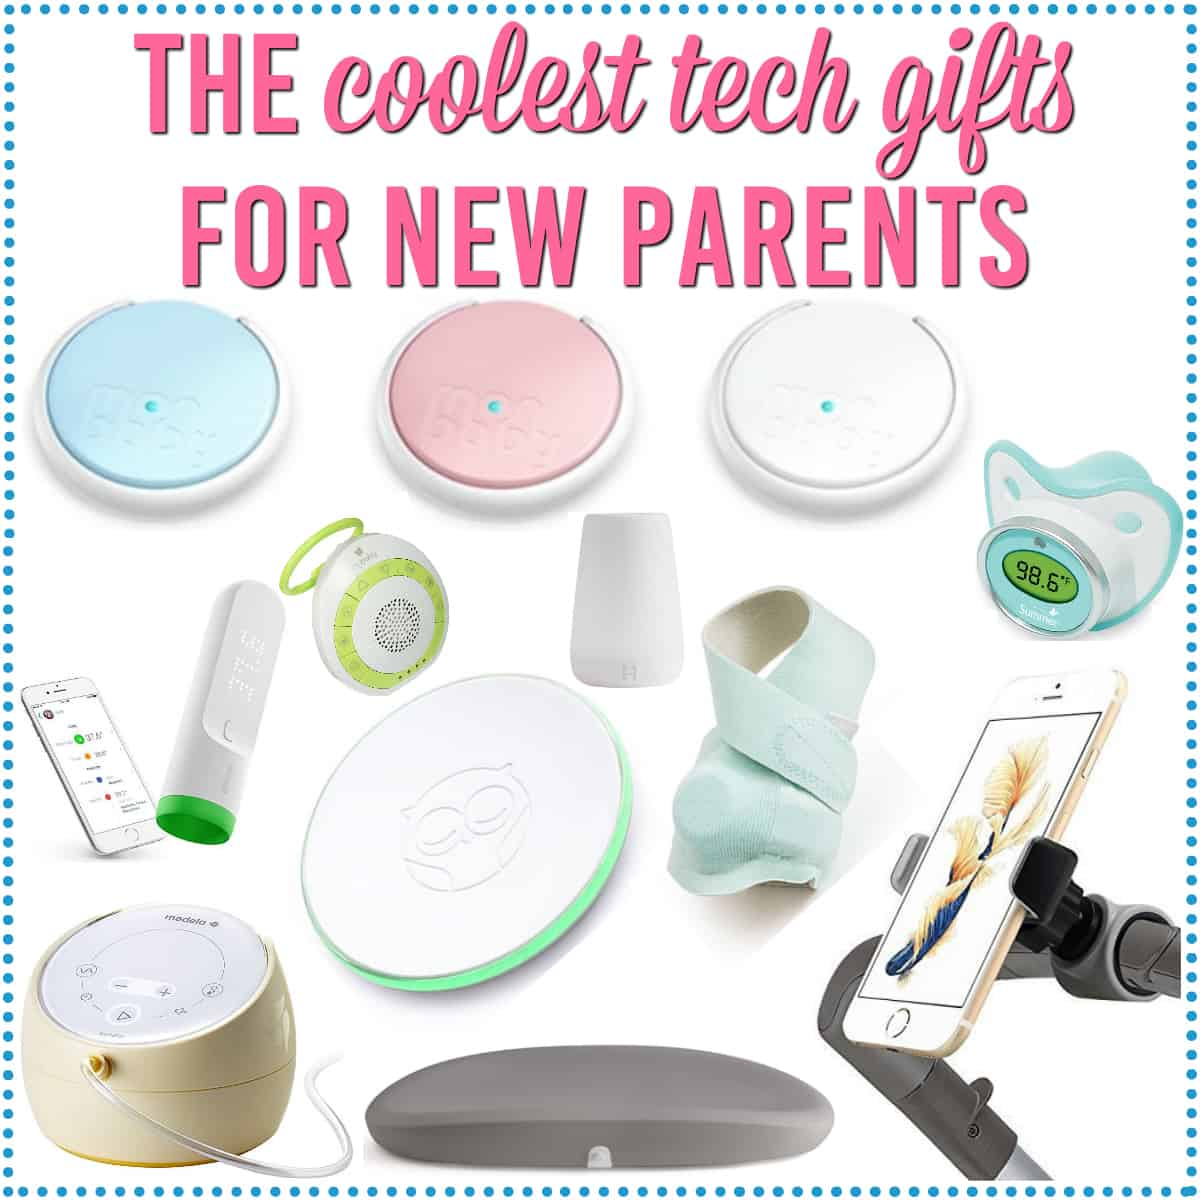 Tech gifts for parents